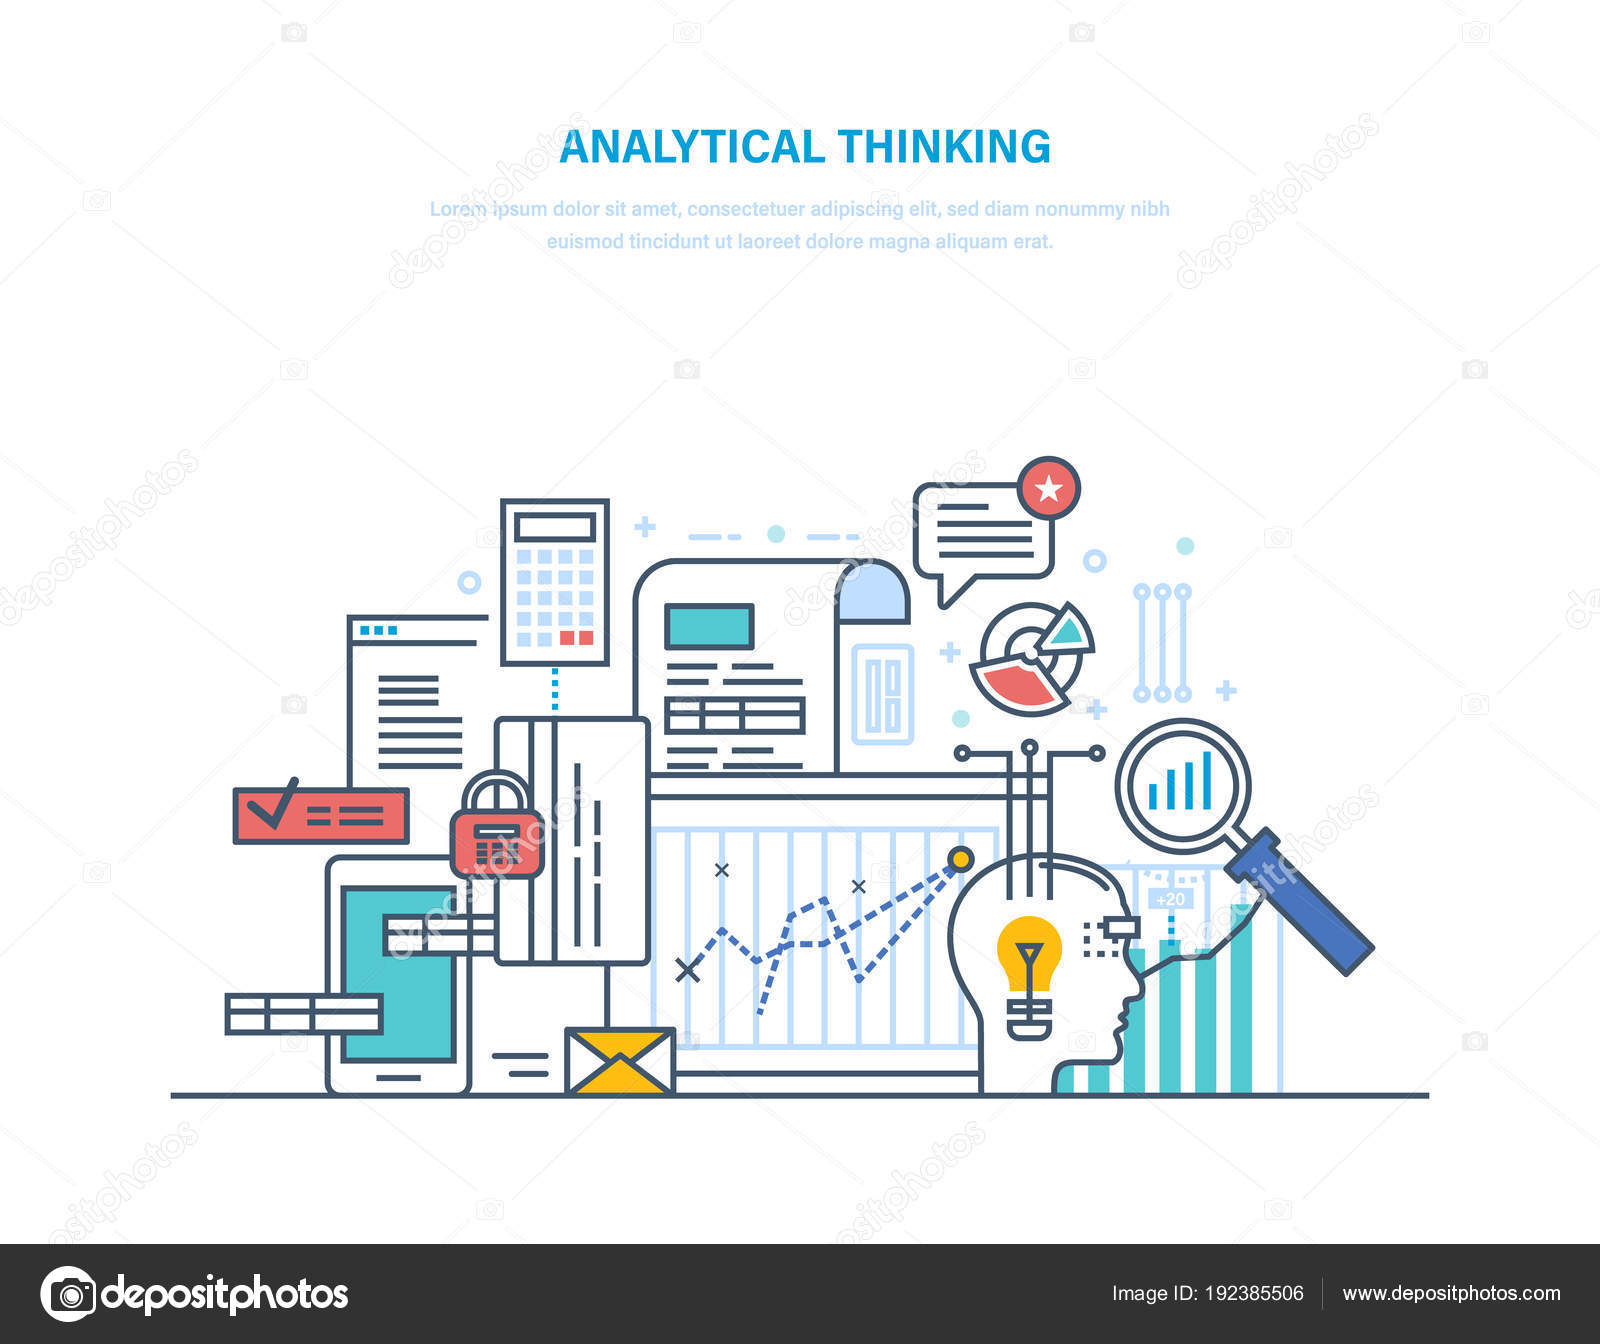 Analytical thinking logical analysis reasoning searching analytical thinking logical analysis and reasoning searching for effective optimal solution in situations creative thinking generation of creative ideas ccuart Gallery